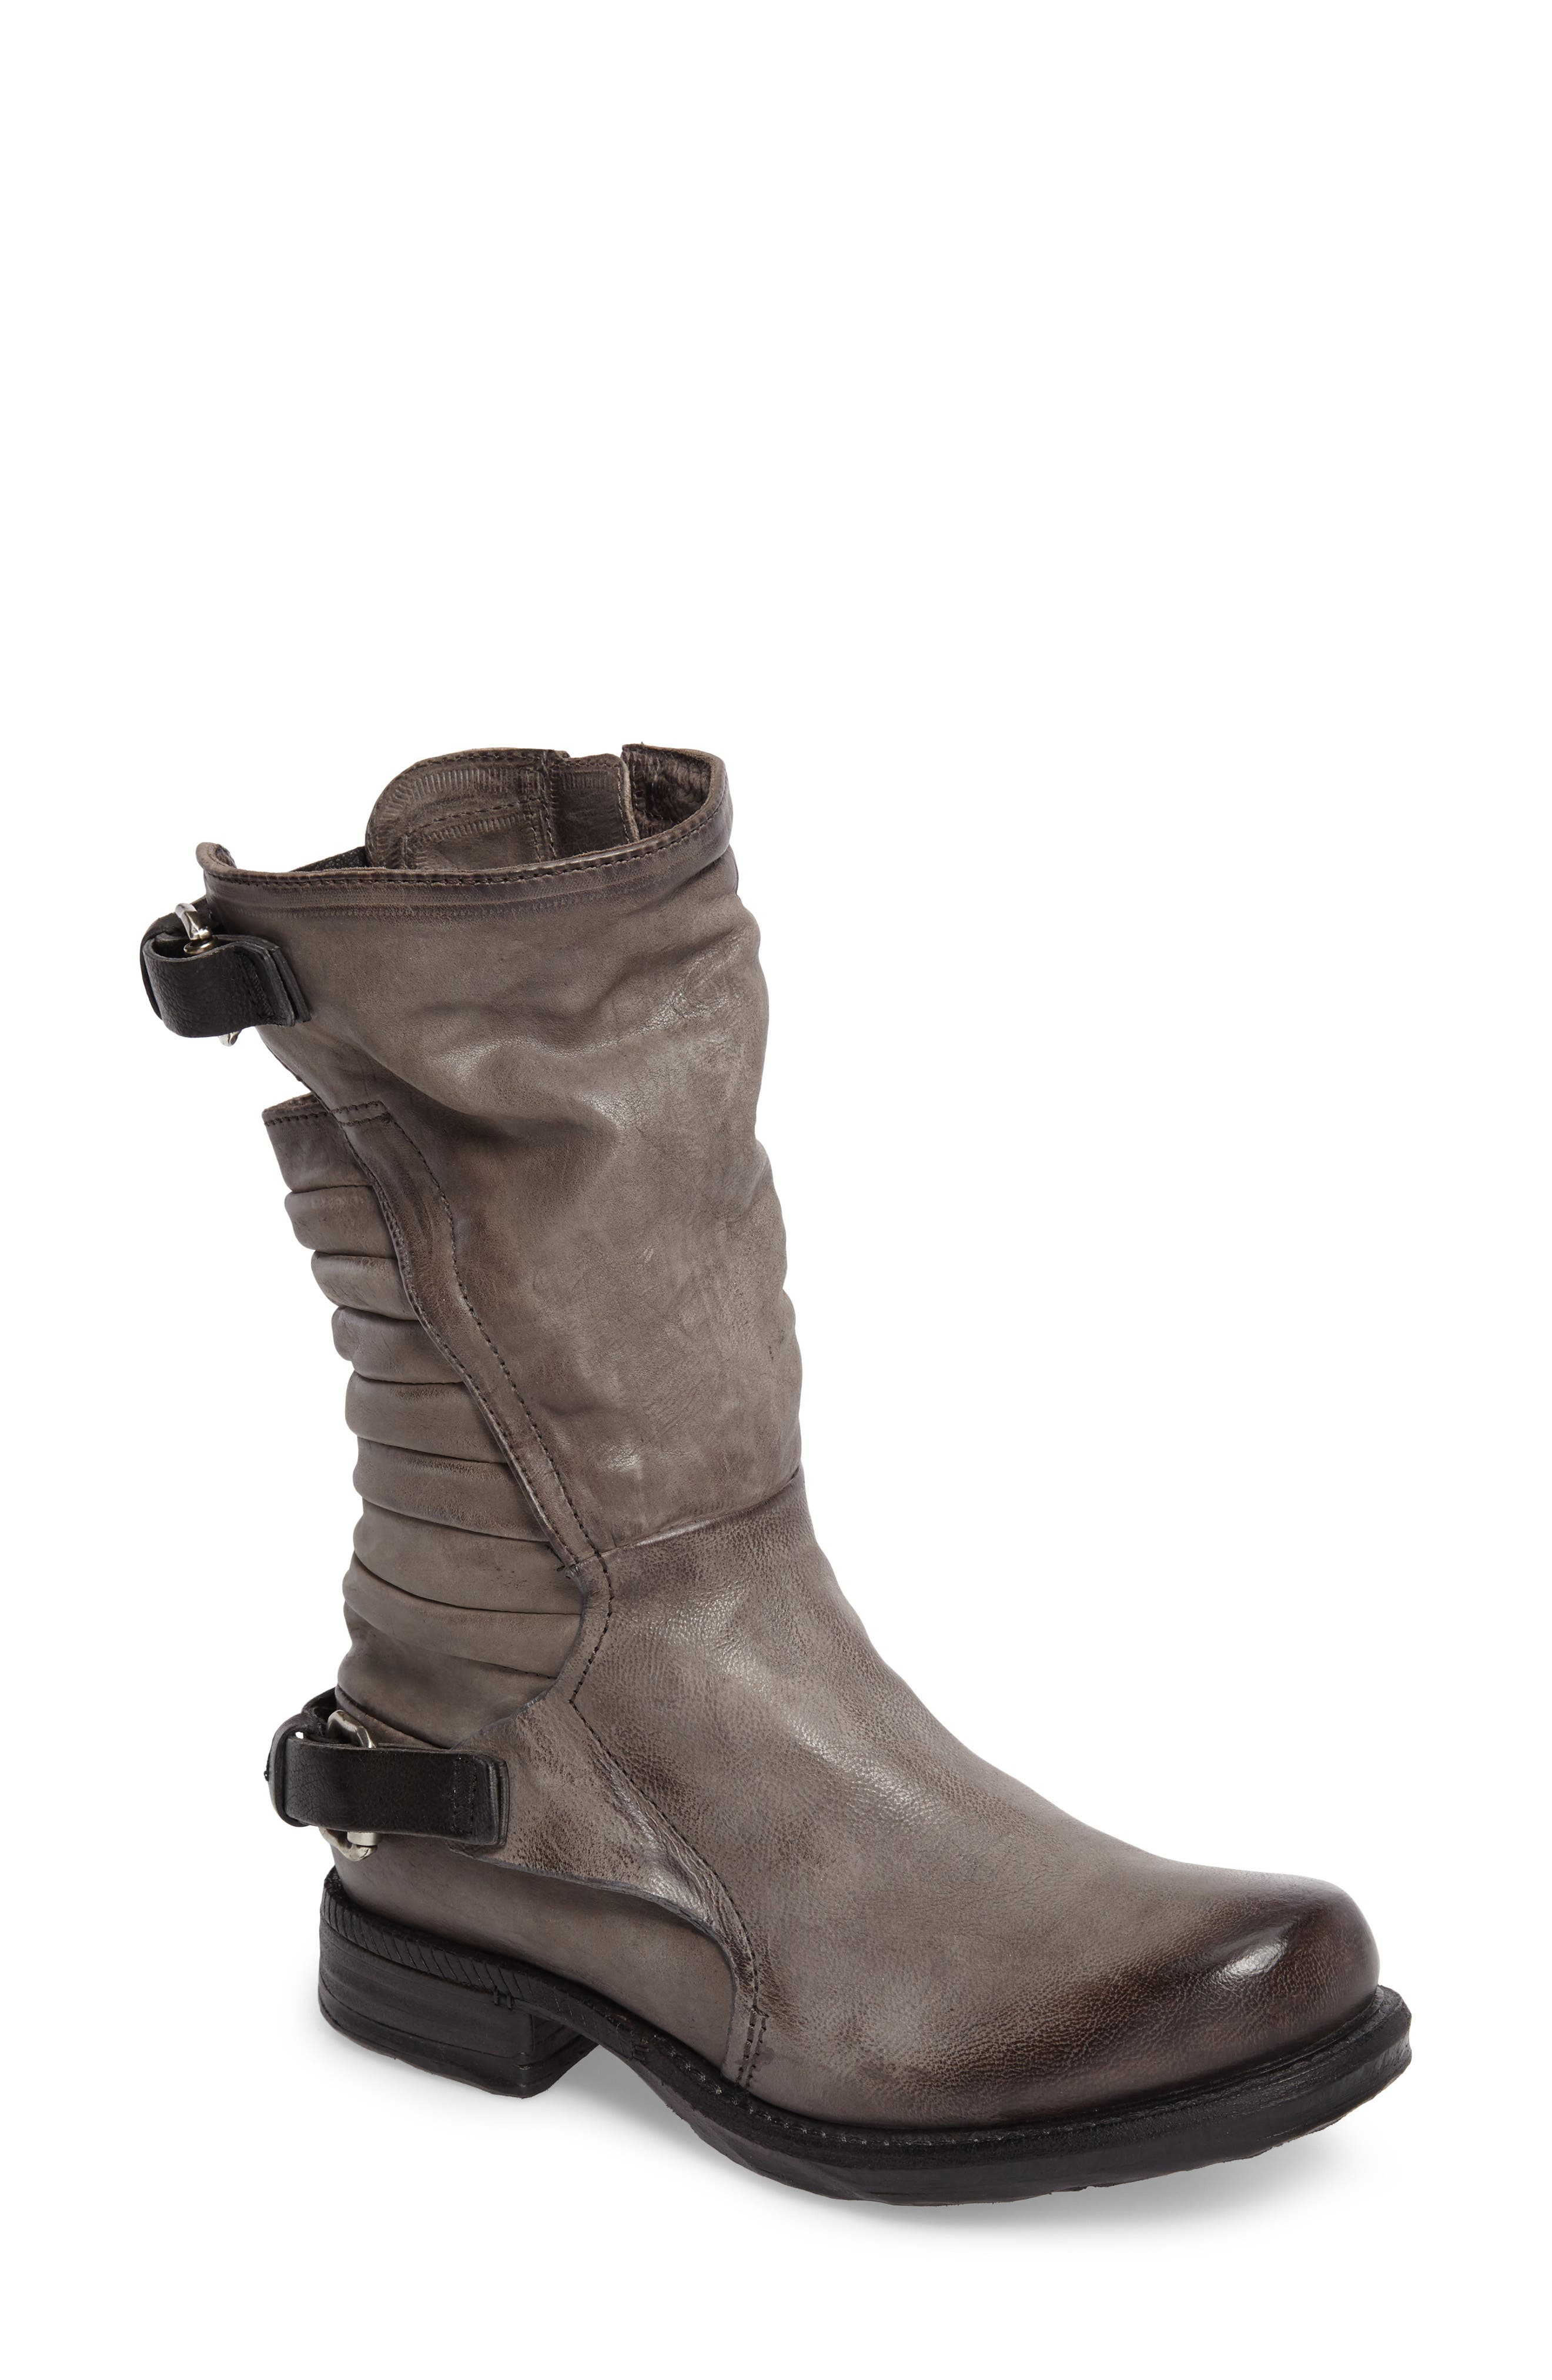 Alternate Image 1 Selected - A.S. 98 Serge Boot (Women)